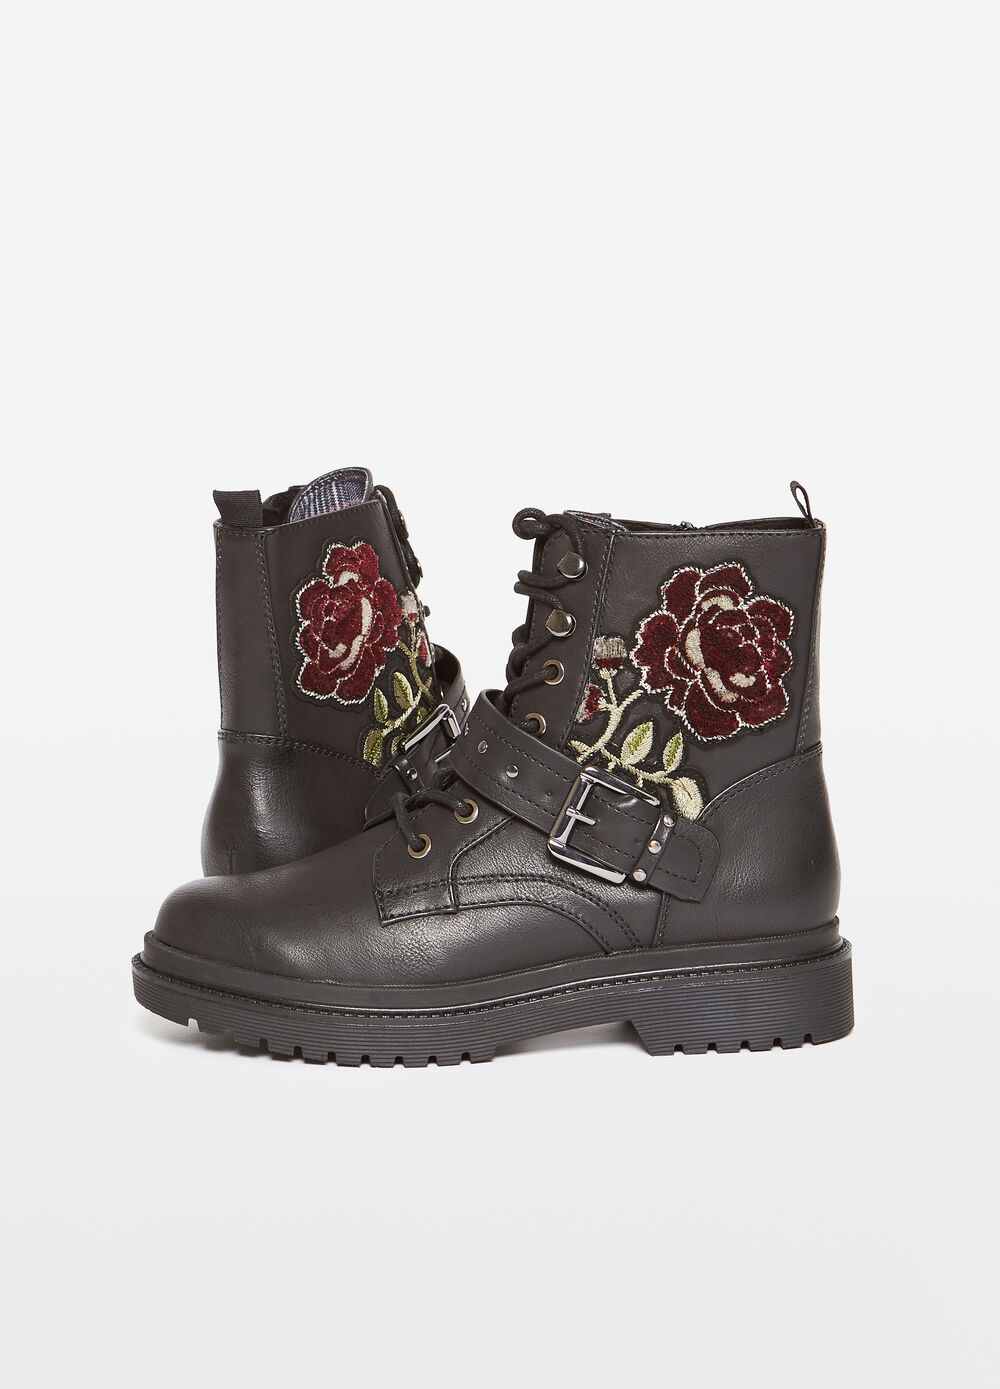 Ankle boots with floral embroidery